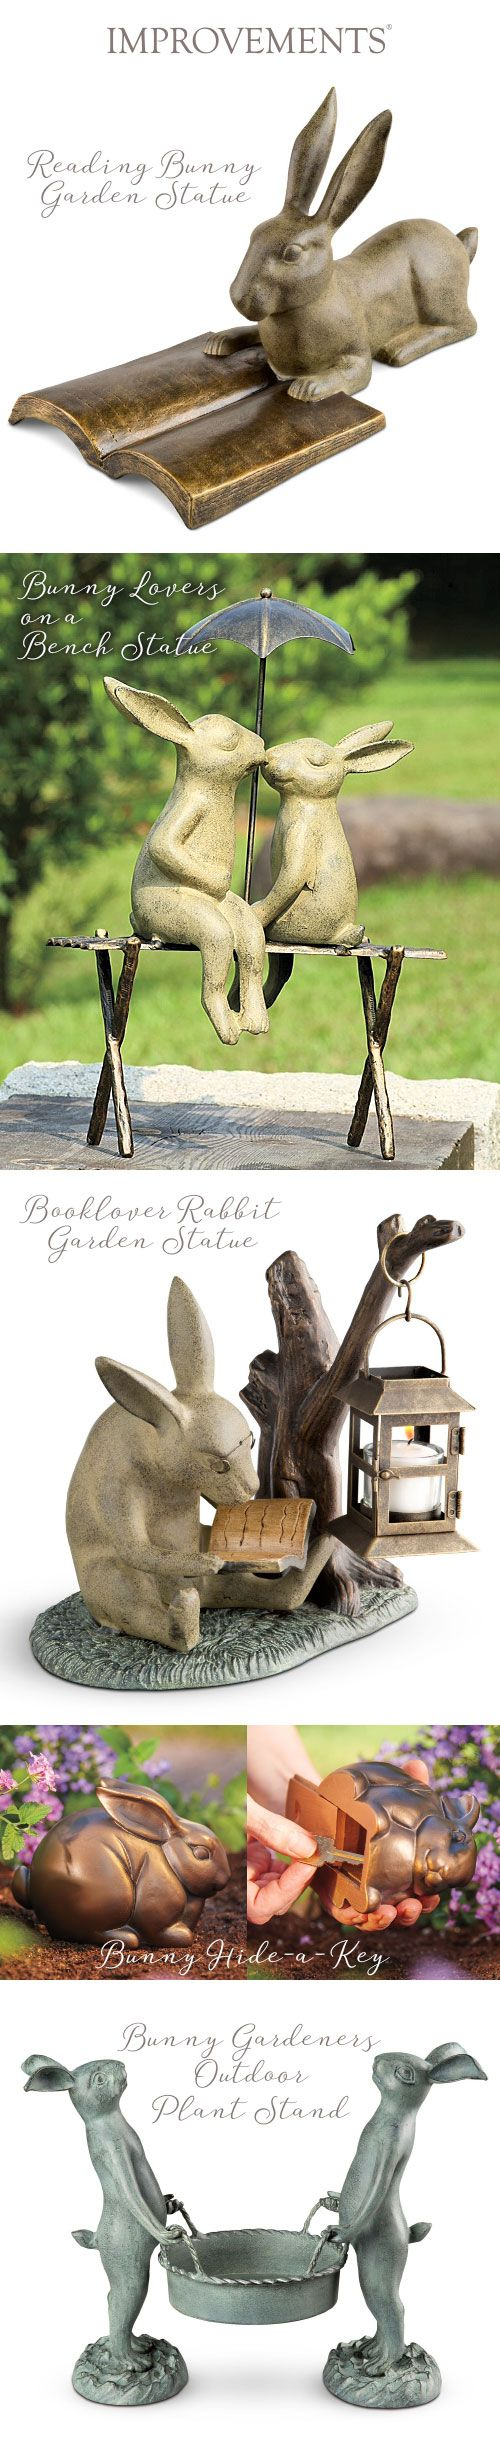 Add Some Adorable To Your Outdoor Greenery With These Garden Statues. They  Would Be U201c